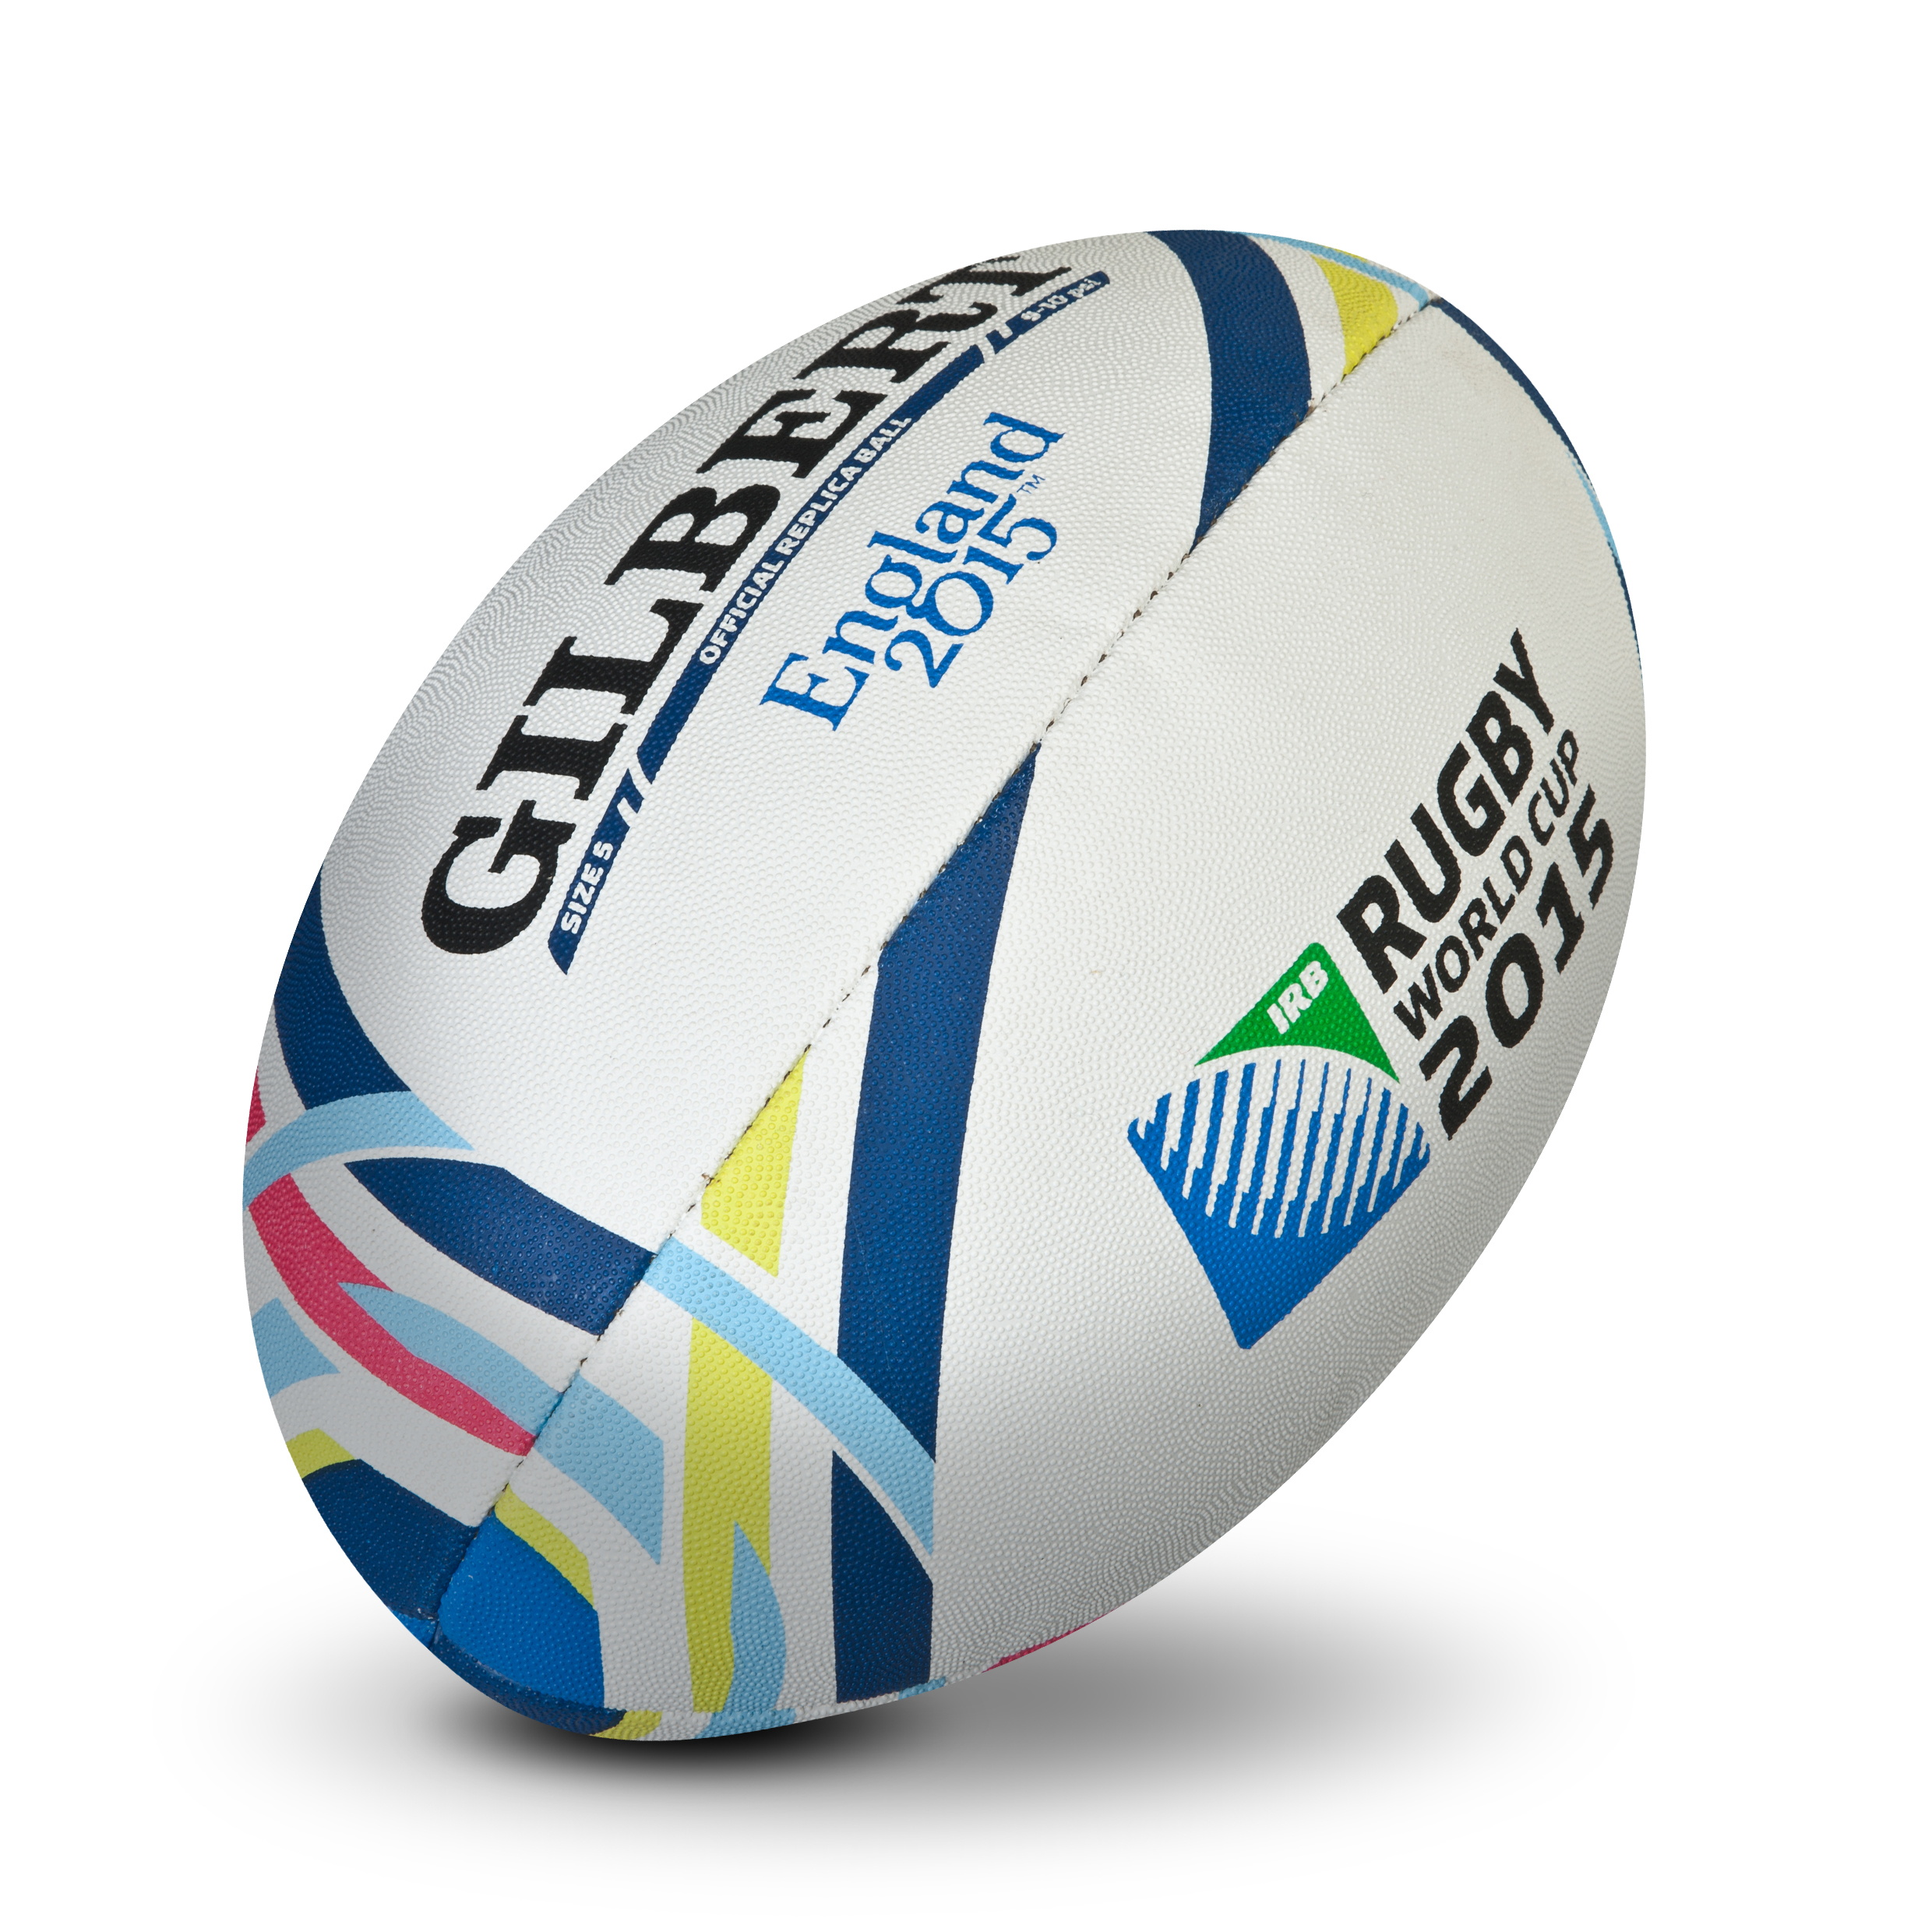 Gilbert Rugby World Cup 2015 Replica Ball White